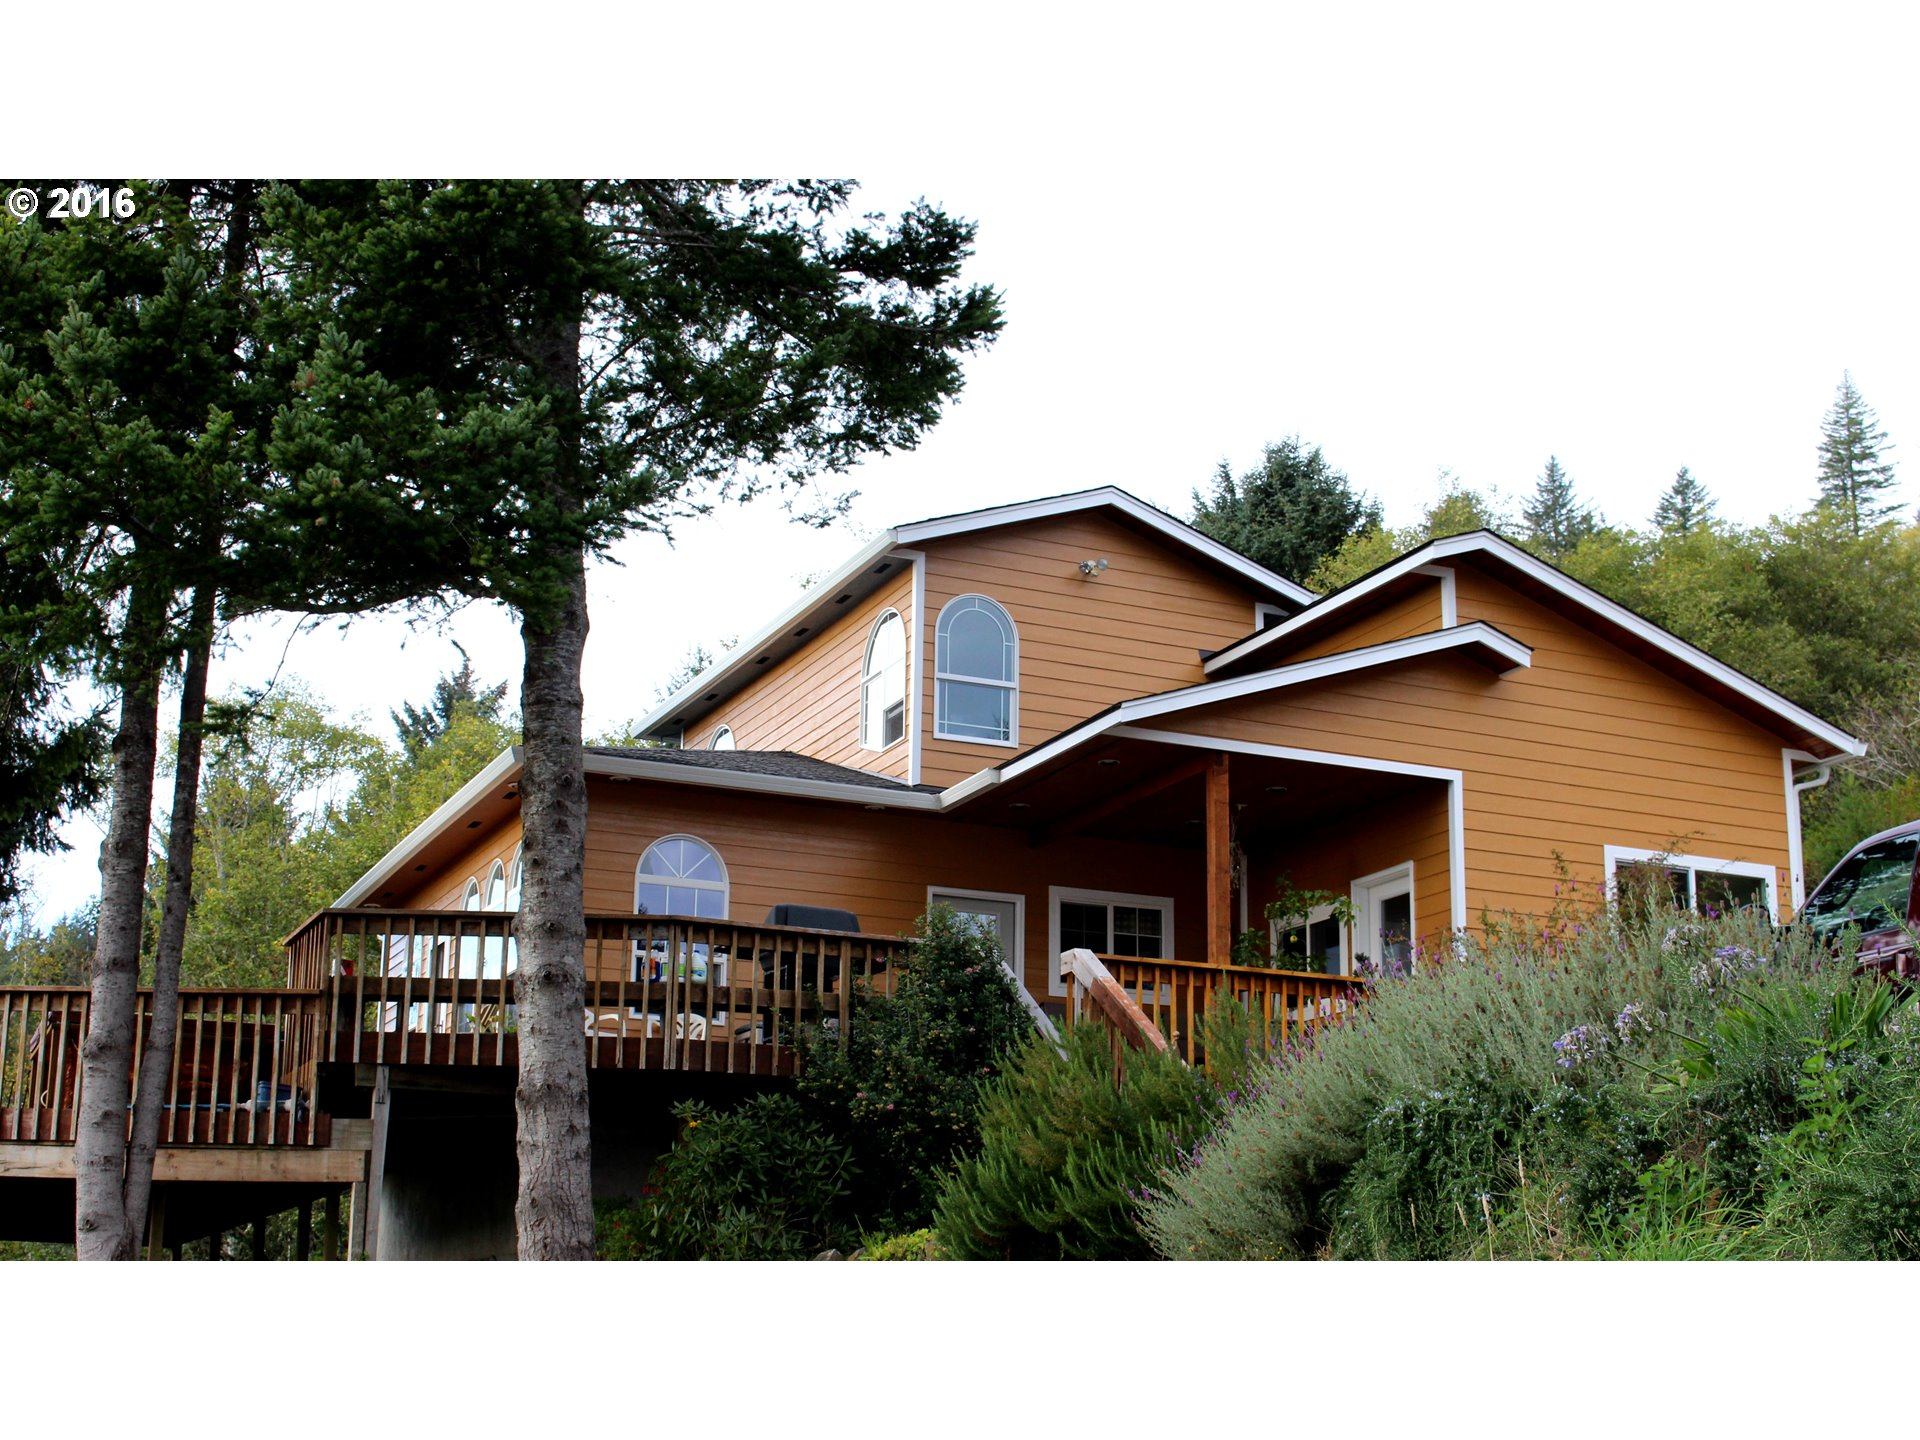 5439 HERMAN CAPE RD, Florence, OR 97439